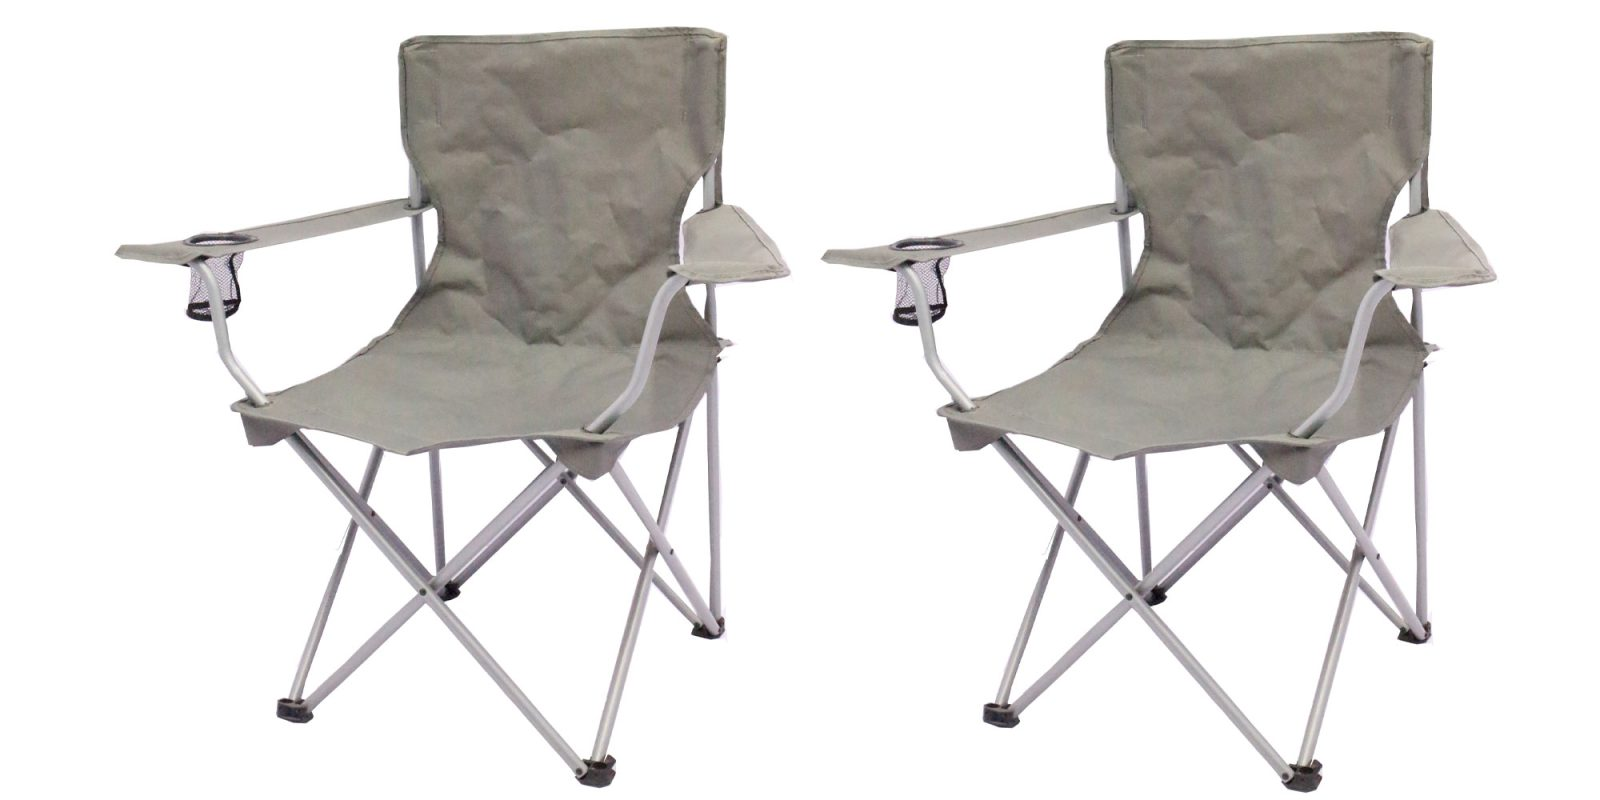 Phenomenal Camp Out With Two Ozark Trail Folding Lawn Chairs For 11 At Short Links Chair Design For Home Short Linksinfo